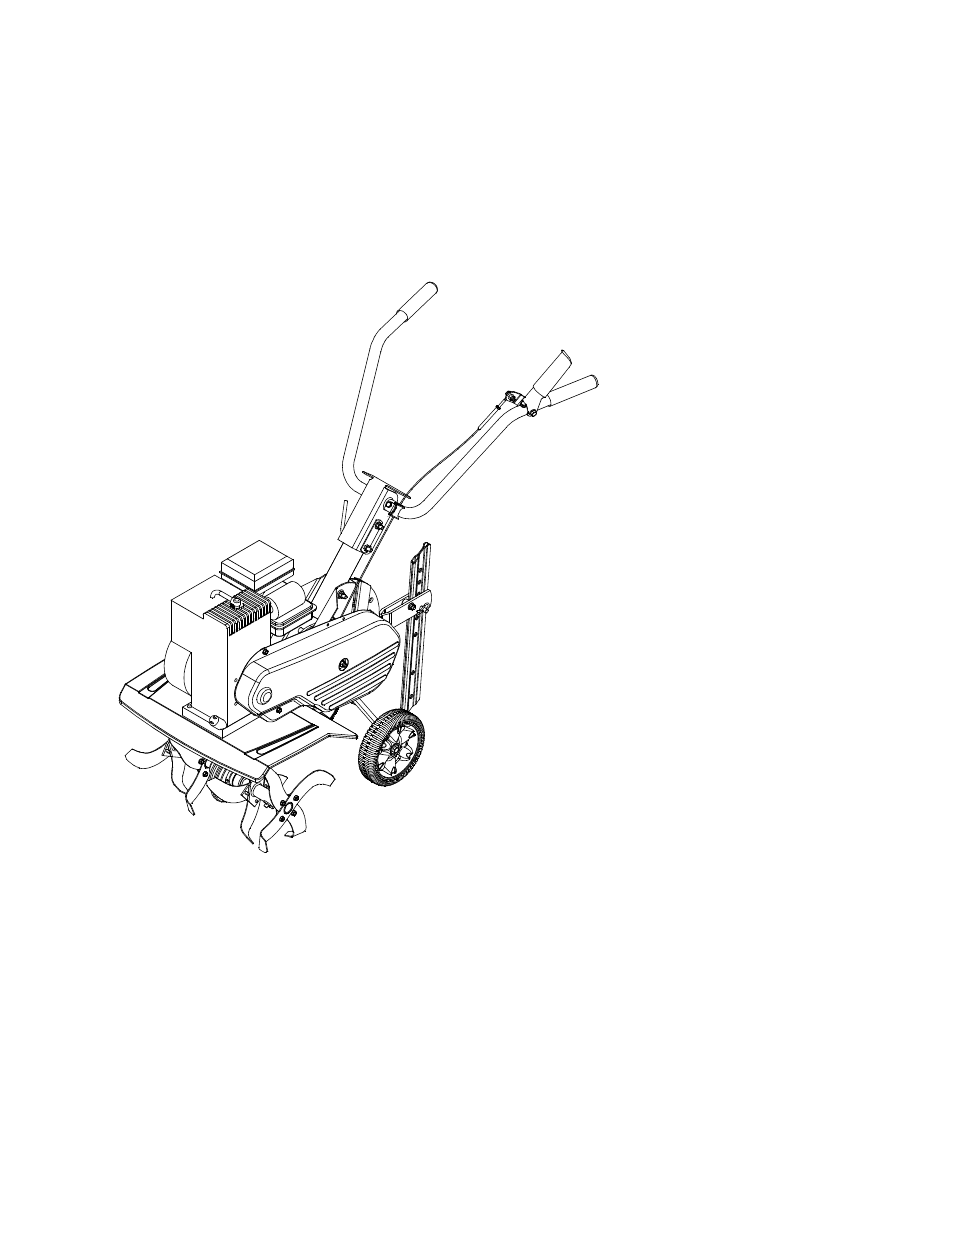 Mtd Front Tine Tiller 300 User Manual 20 Pages Also For 330